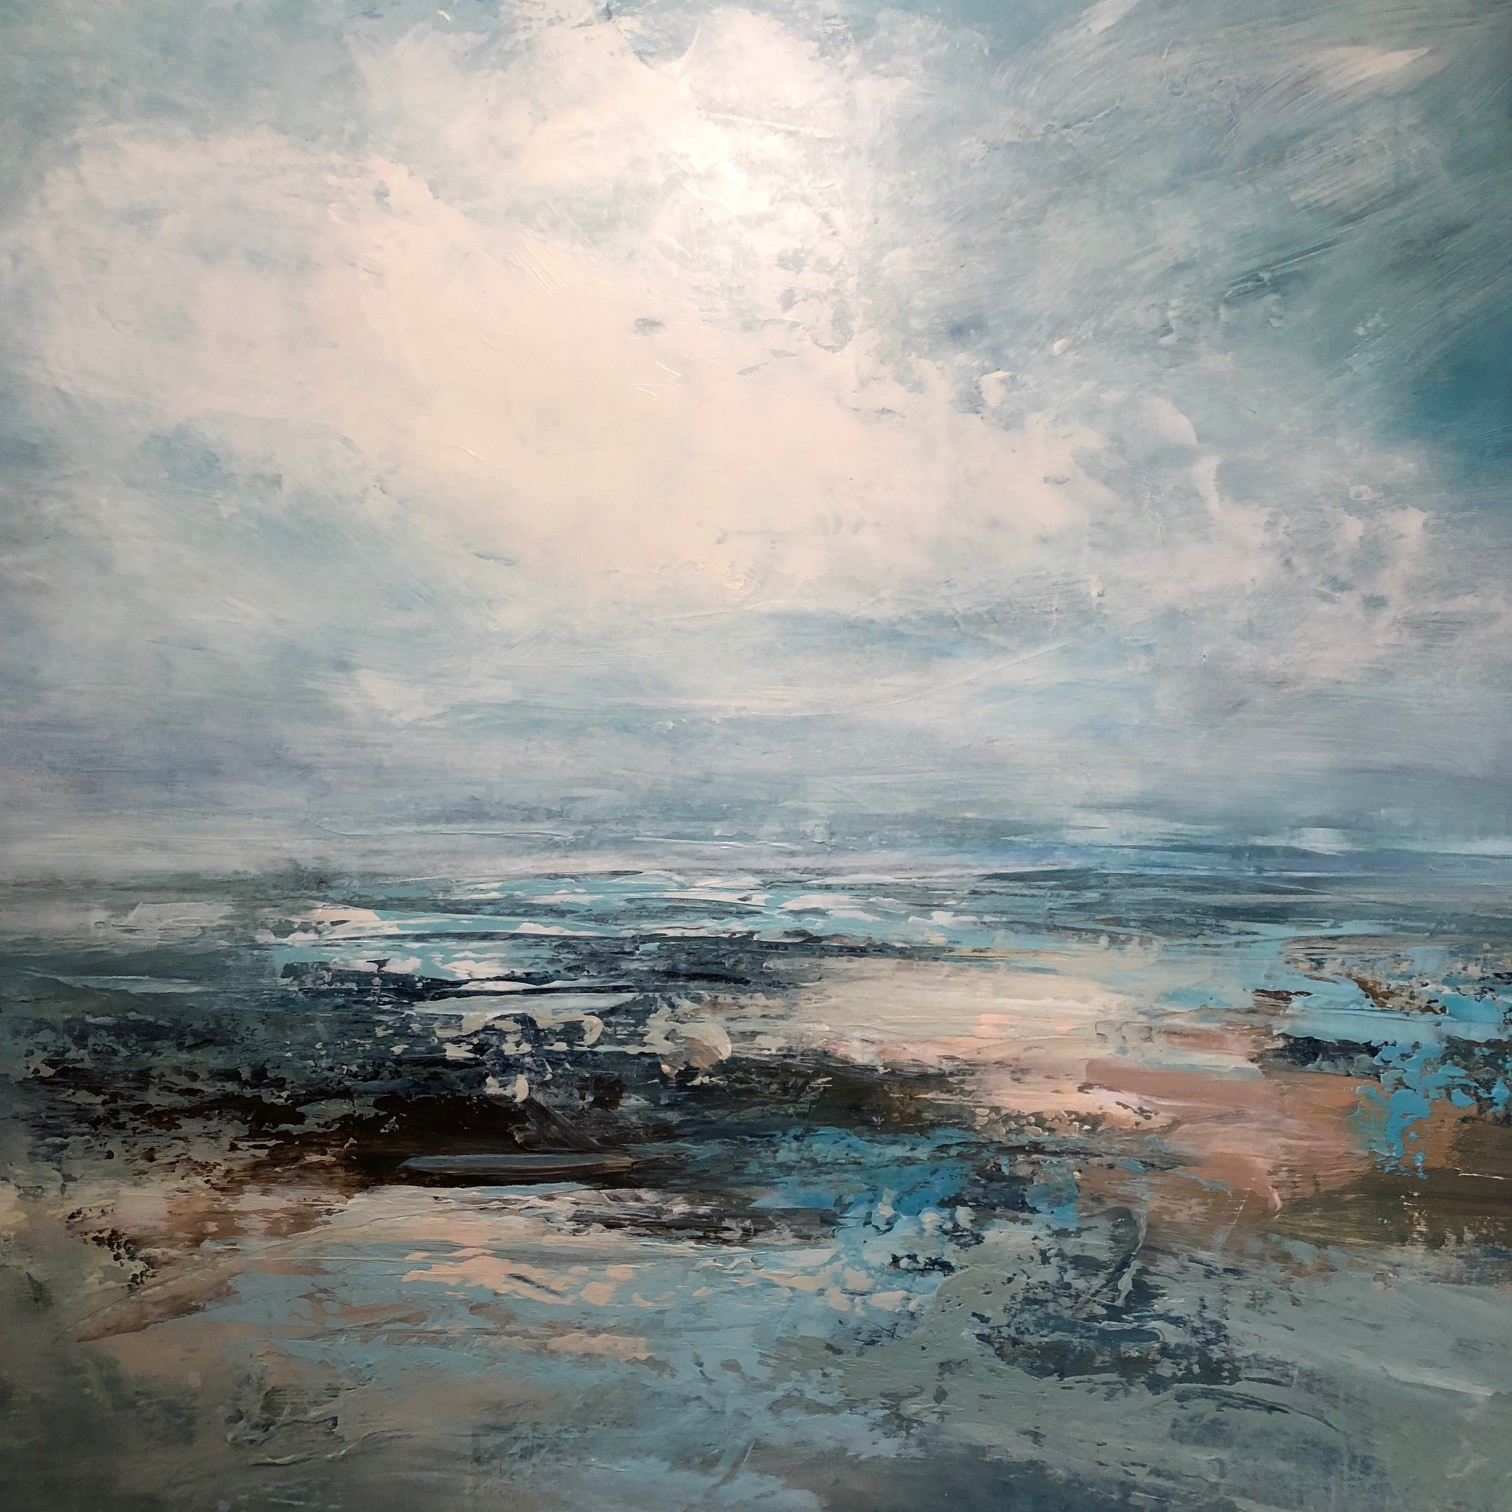 "<span class=""link fancybox-details-link""><a href=""/artists/41-erin-ward/works/6590-erin-ward-late-summer-sands-2019/"">View Detail Page</a></span><div class=""artist""><strong>Erin Ward</strong></div> <div class=""title""><em>Late Summer Sands</em>, 2019</div> <div class=""medium"">Acrylic on canvas</div> <div class=""dimensions"">h. 92 cm x w. 92 cm </div><div class=""price"">£1,790.00</div><div class=""copyright_line"">Ownart: £179 x 10 Months, 0% APR</div>"